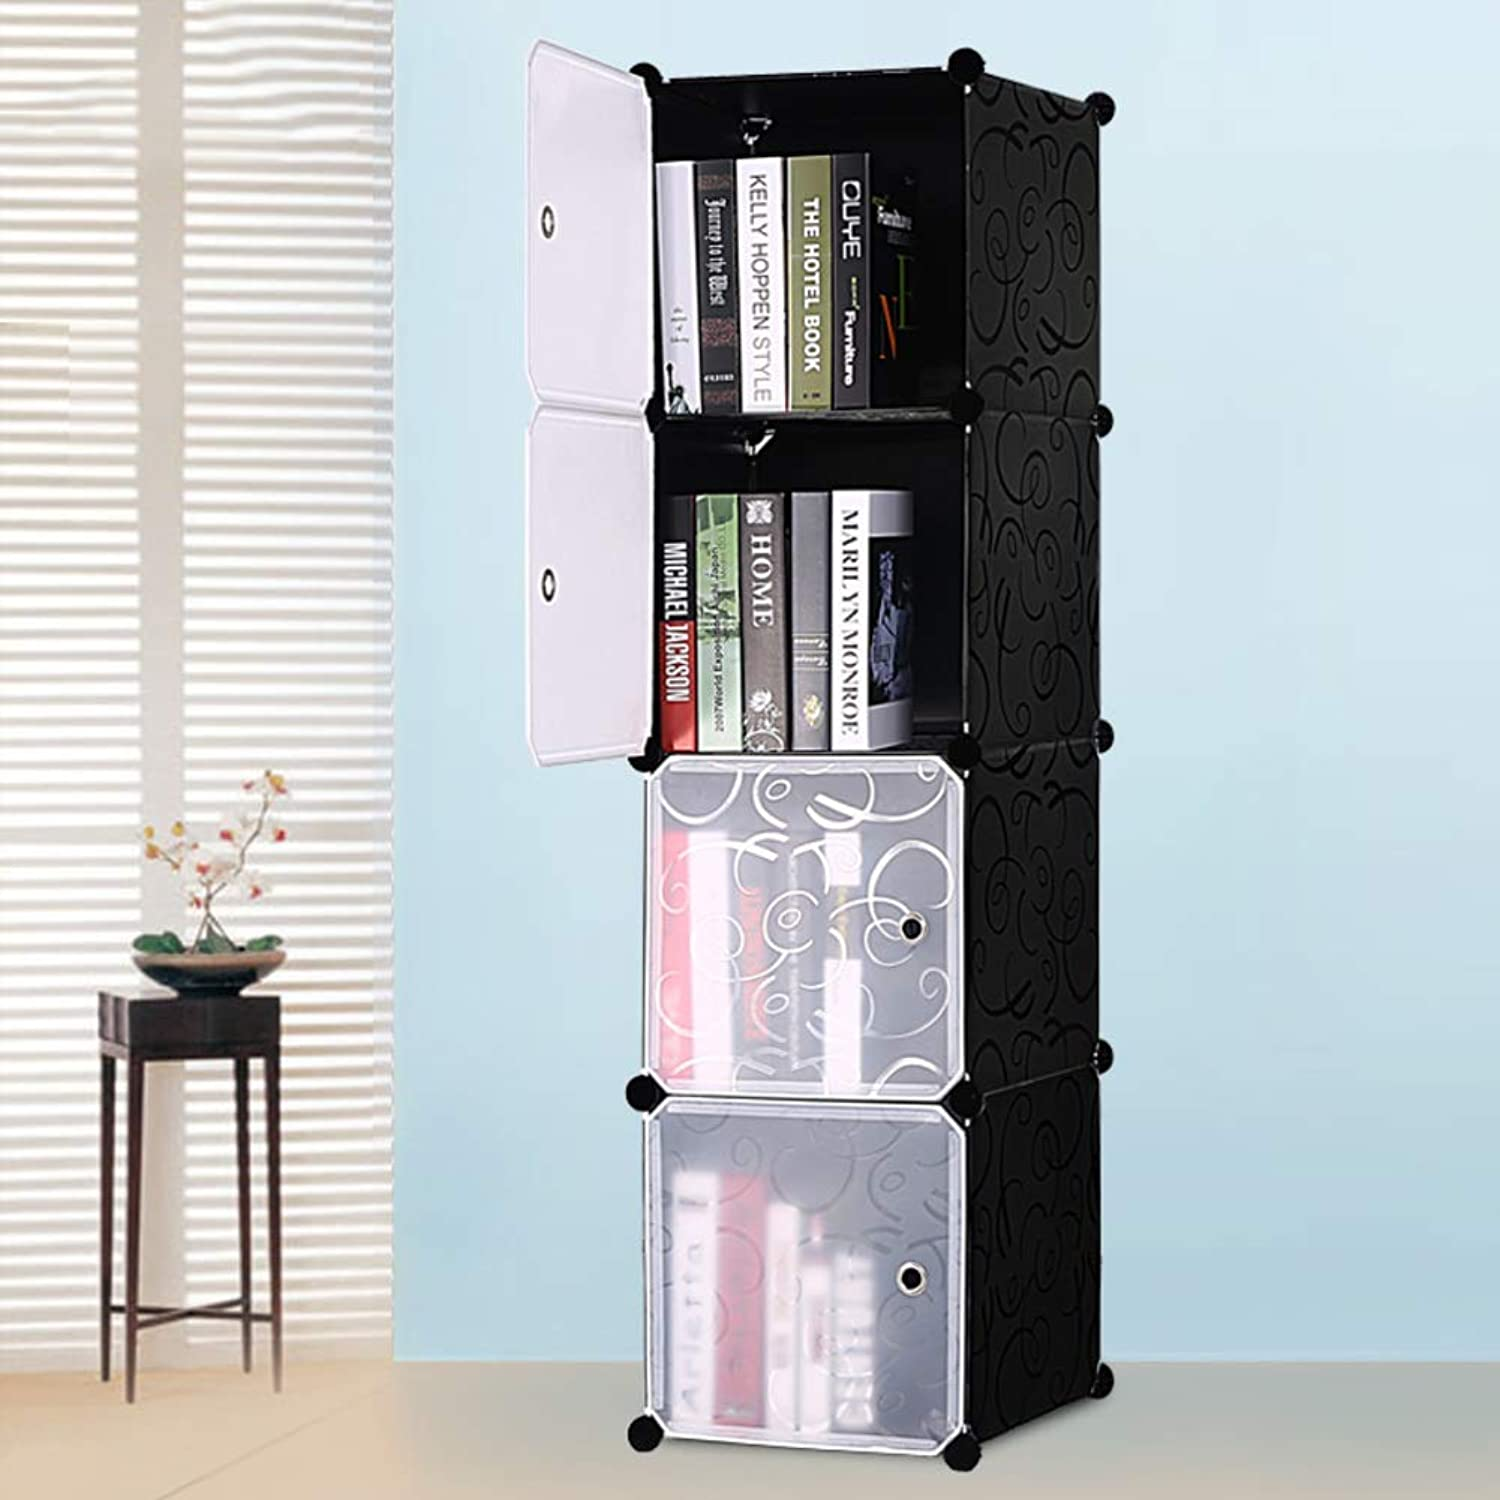 Easy Assembly Bookcase,Creative Bookshelf Space Saving Multipurpose Storage Organizer Shelves 8 Cabinet-A2 37  75  75cm(15  30  30in)